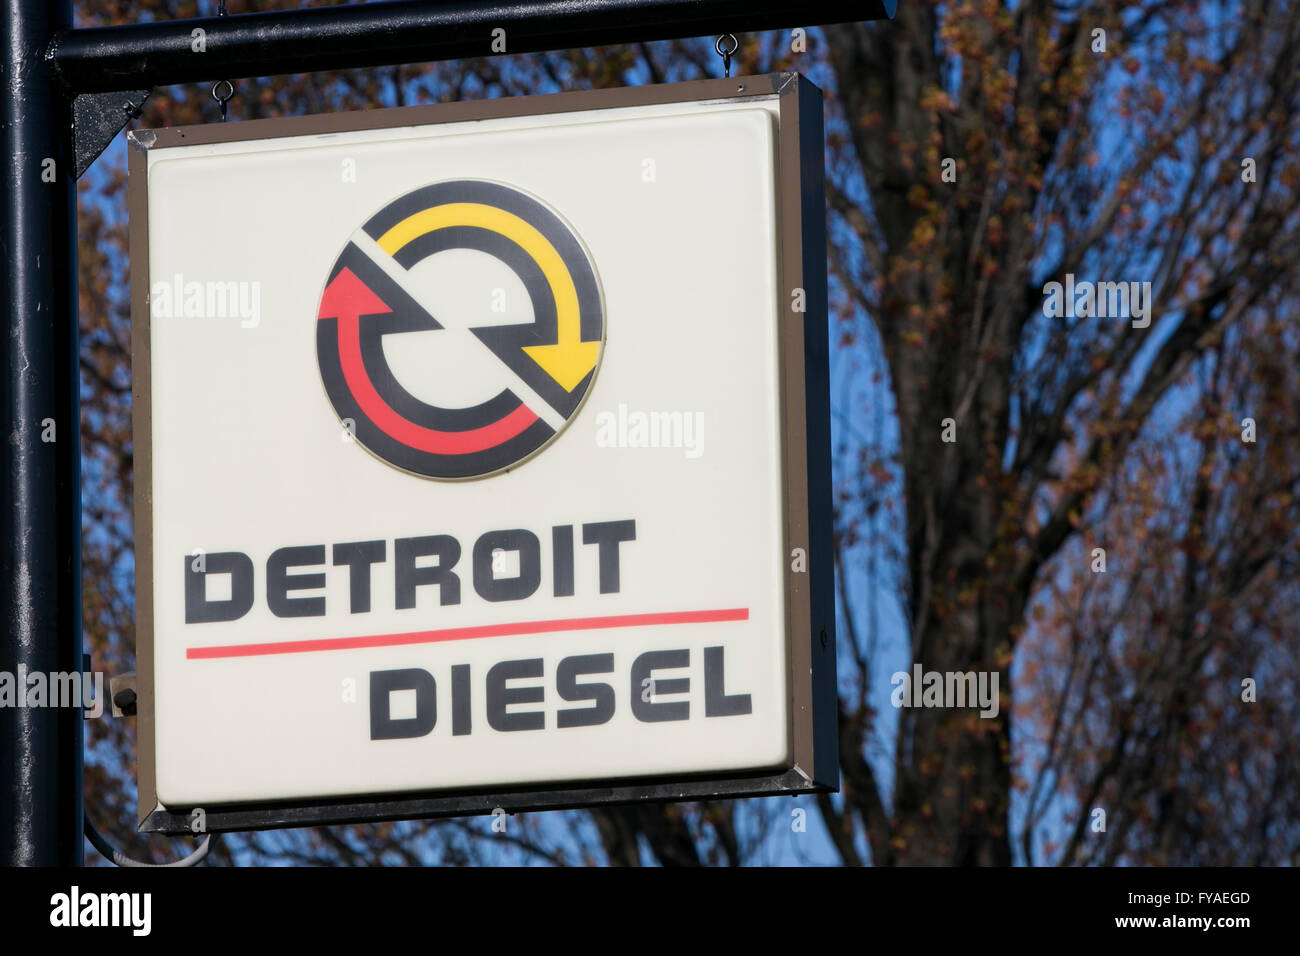 A logo sign outside of a facility occupied by Detroit Diesel in Carlisle, Pennsylvania on April 17, 2016. - Stock Image